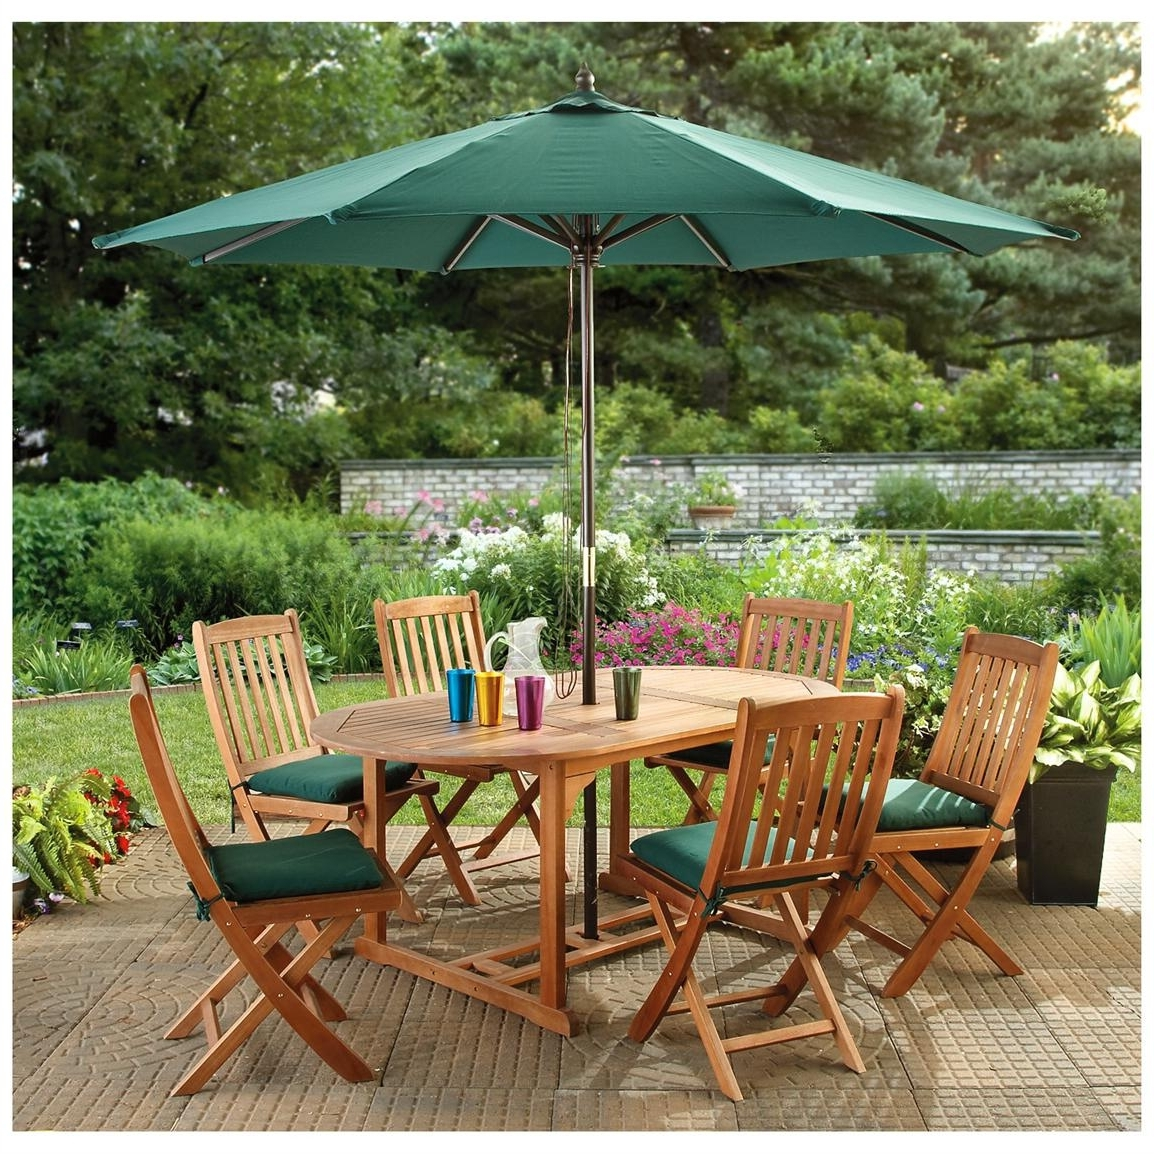 Patio: Awesome Umbrella Patio Set Frontgate Outdoor Furniture Within Well Known Patio Table Sets With Umbrellas (View 7 of 20)